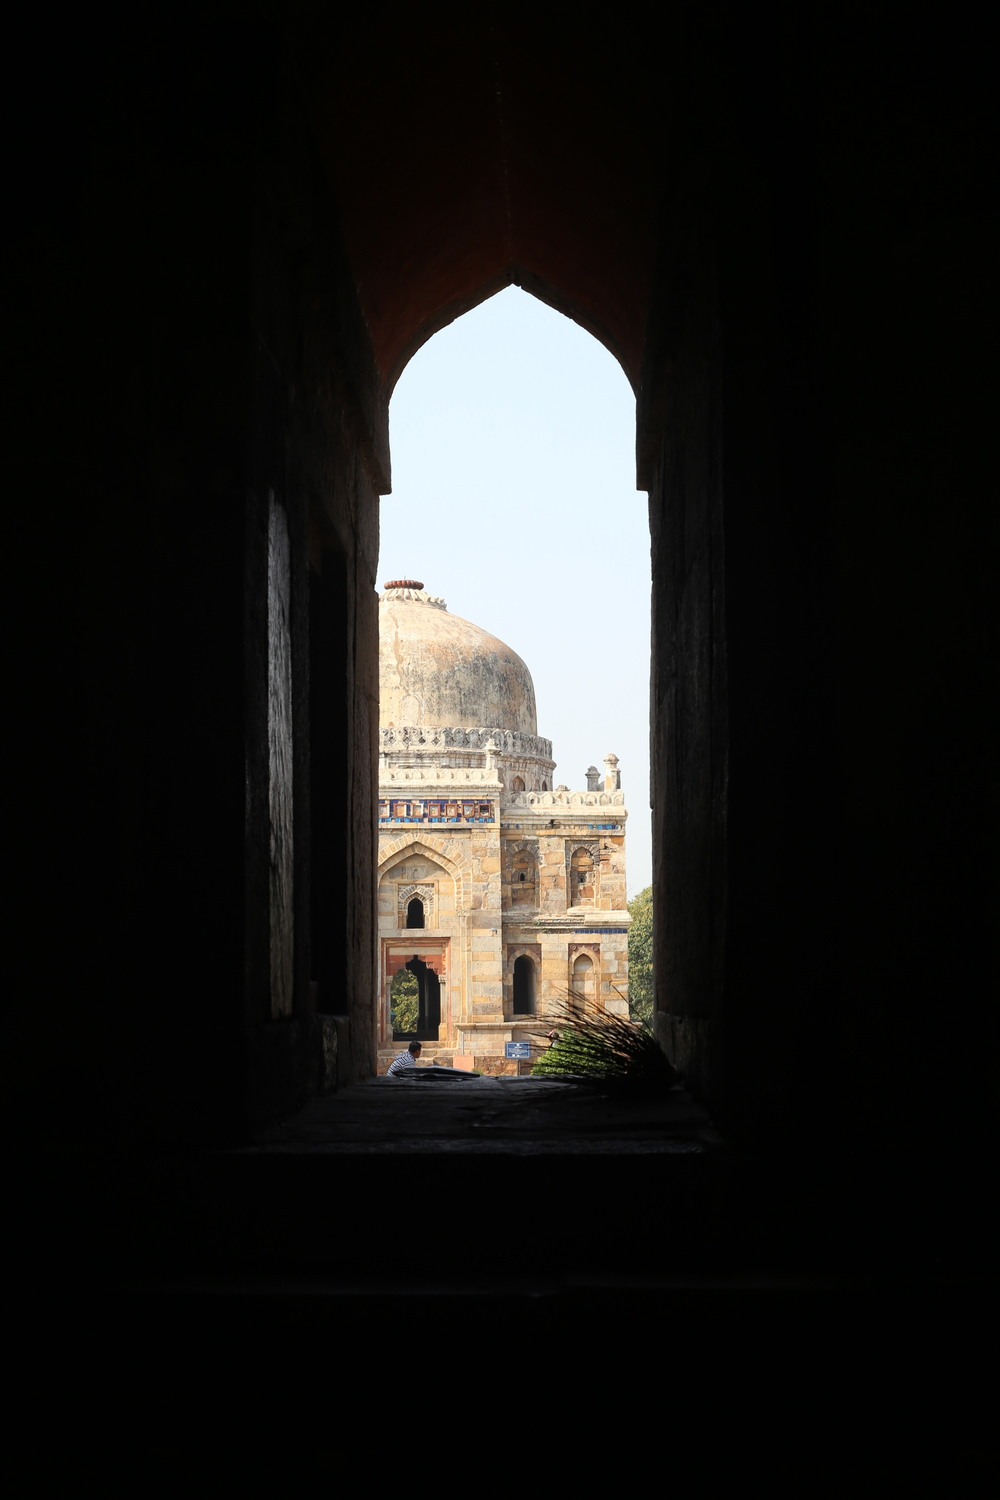 Looking out - Lodhi Gardens - New Delhi, India